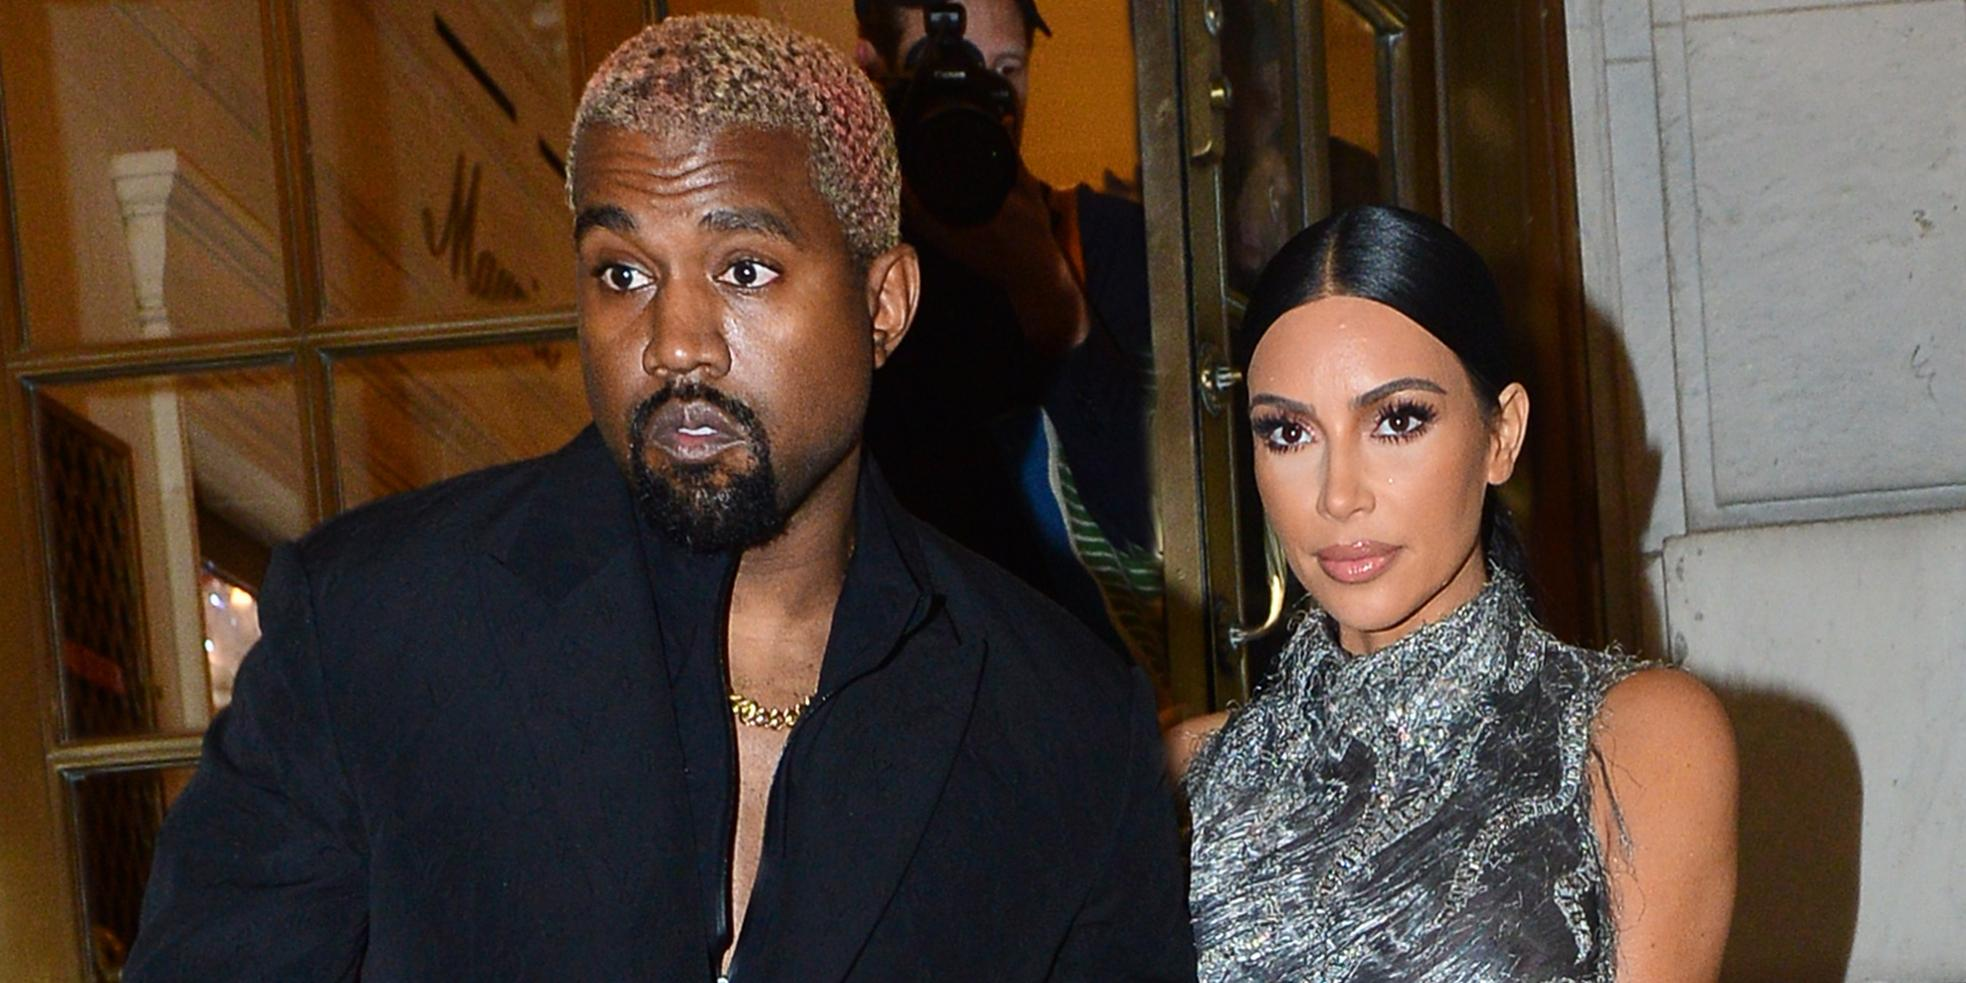 Moving Out? Kanye West Returns Home For 'Awards,' Has 'Been Staying At A Hotel' To Avoid Kim Kardashian Marital Mess